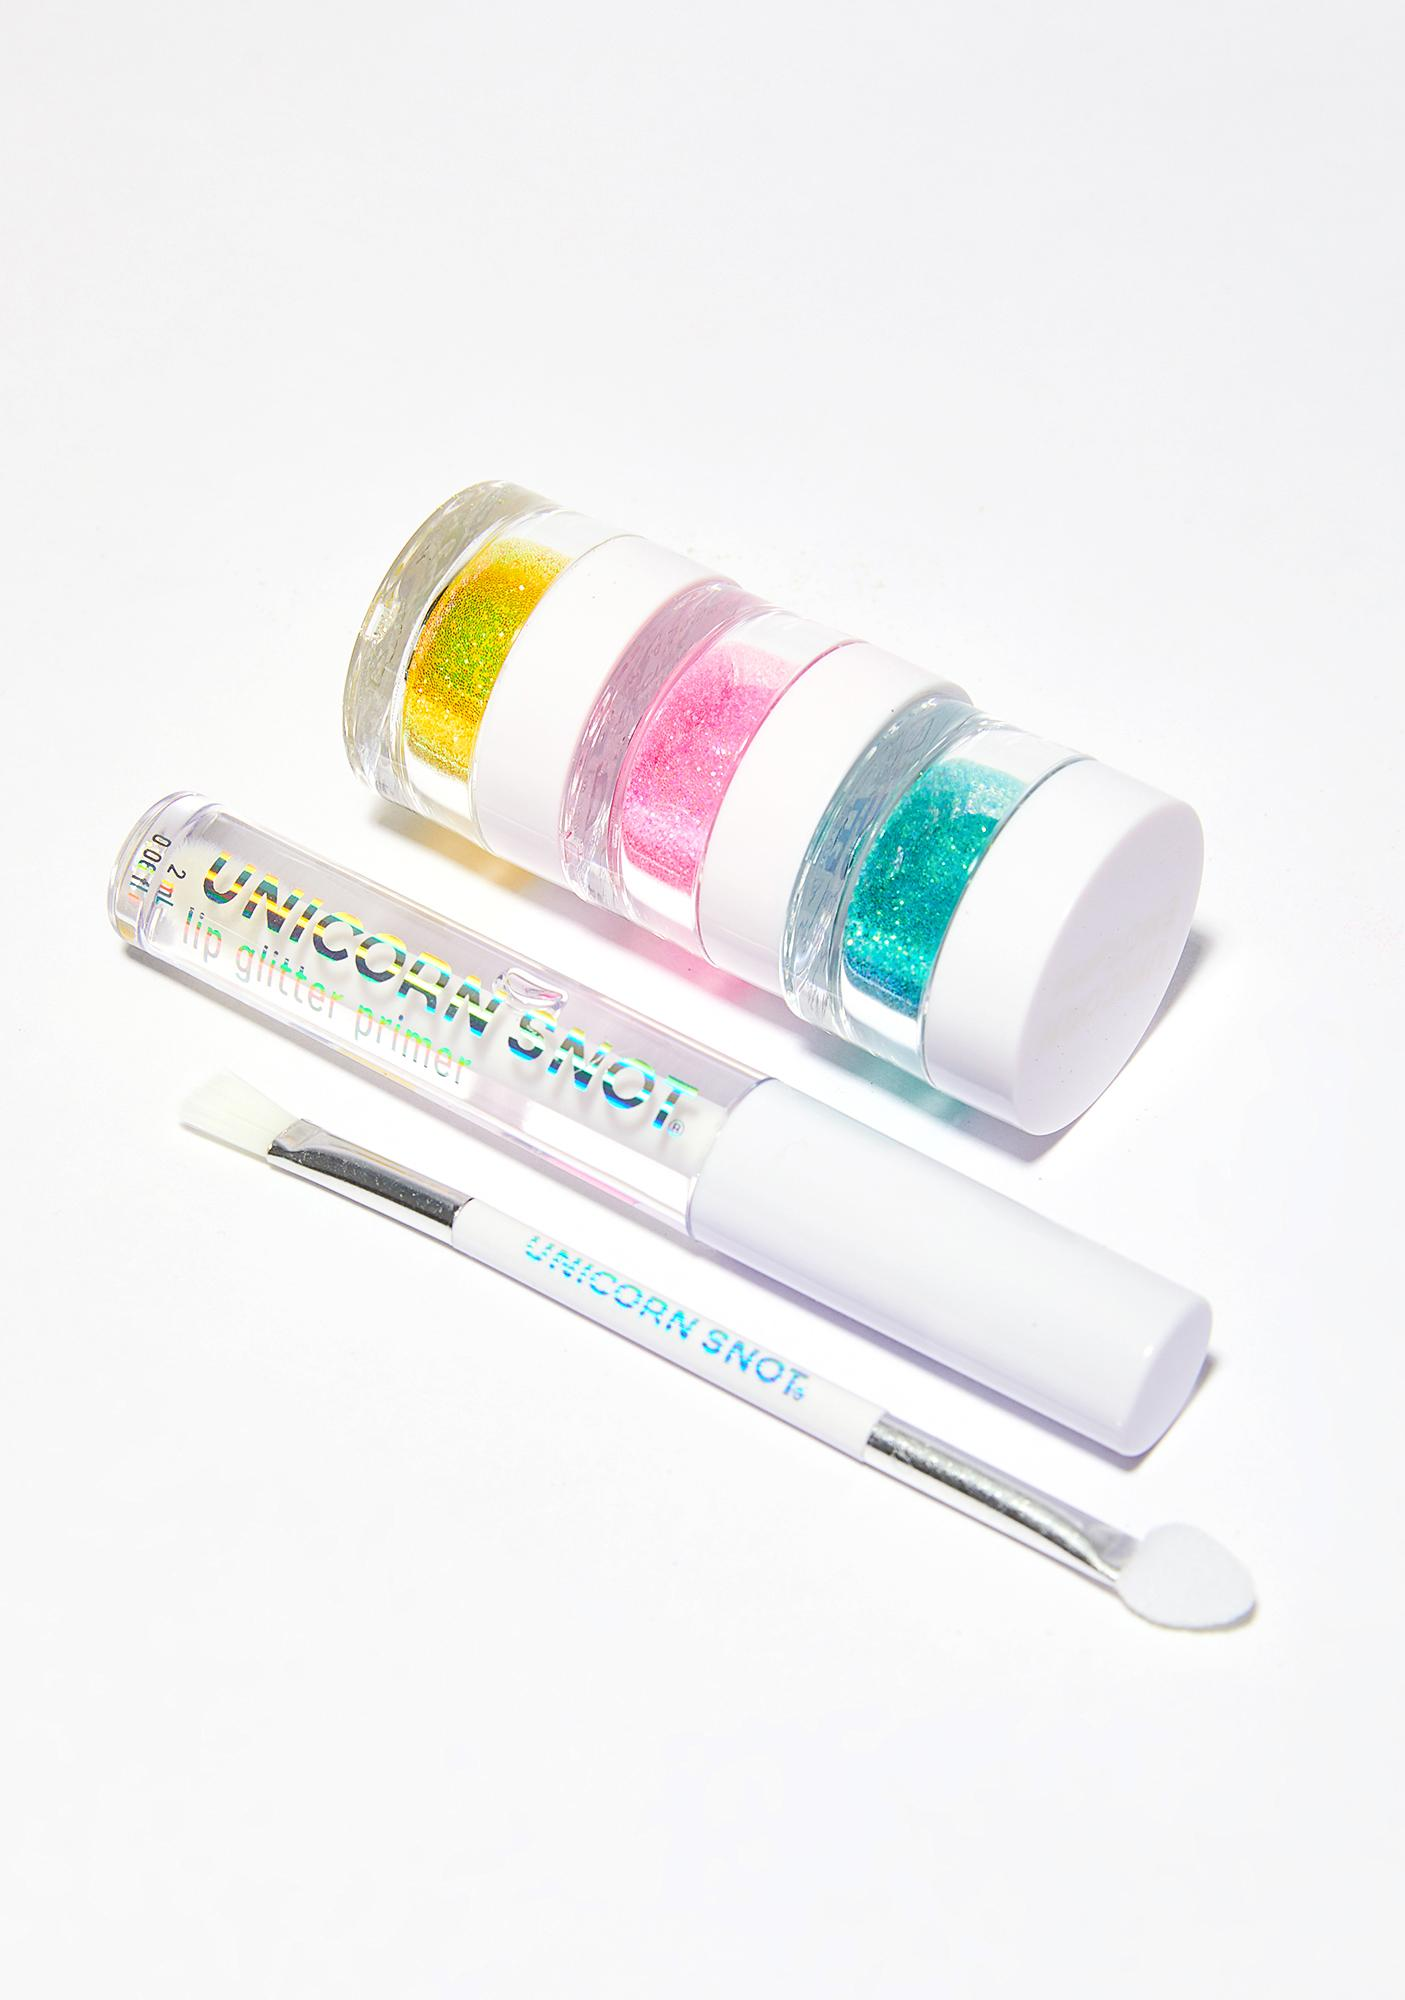 Unicorn Snot Lip Glitter Kit